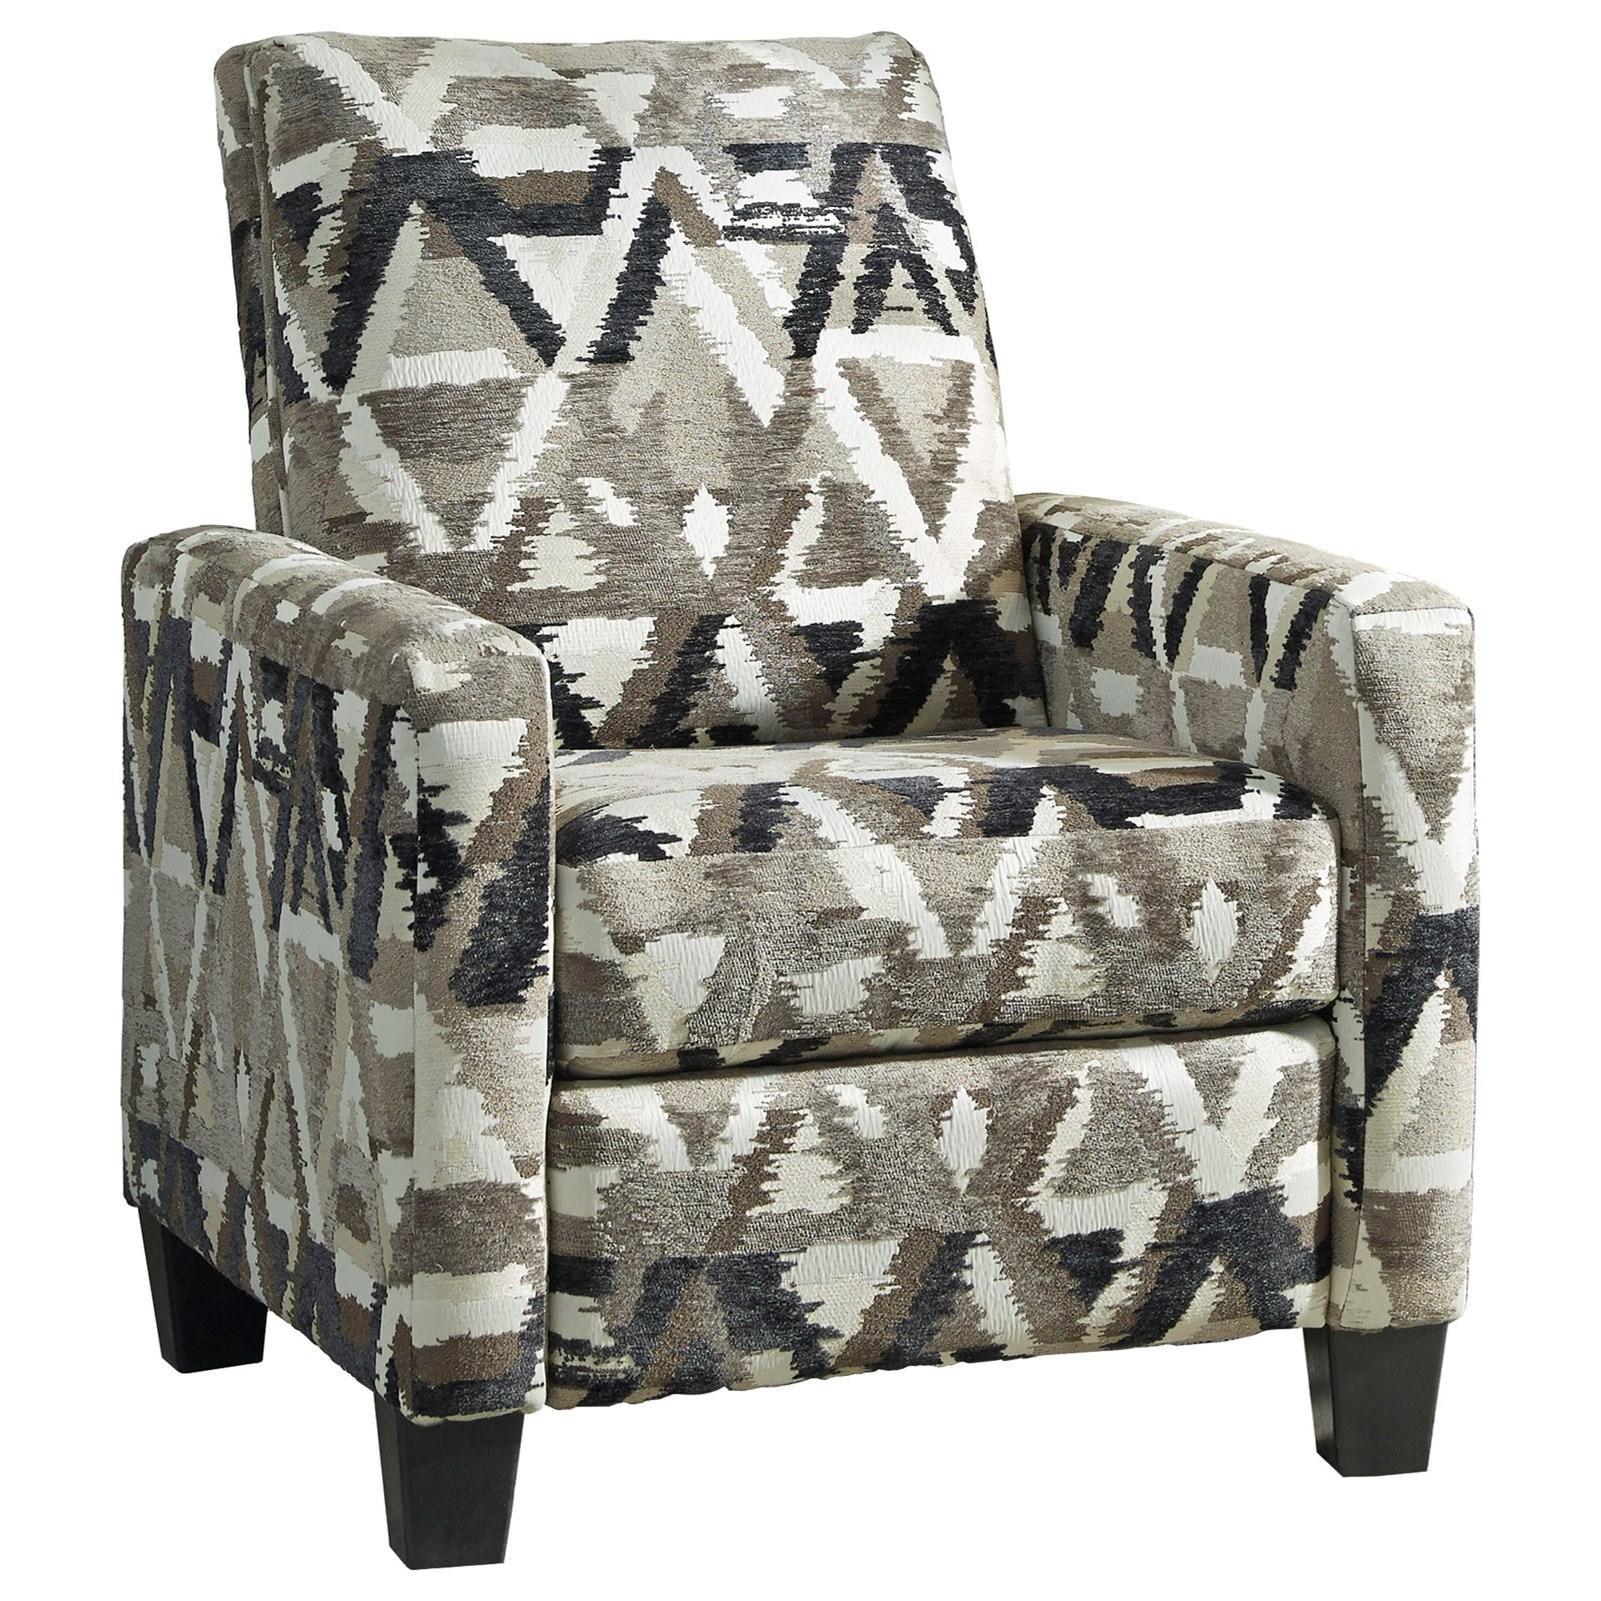 Colleyville Low Leg Recliner by Signature Design by Ashley at Northeast Factory Direct